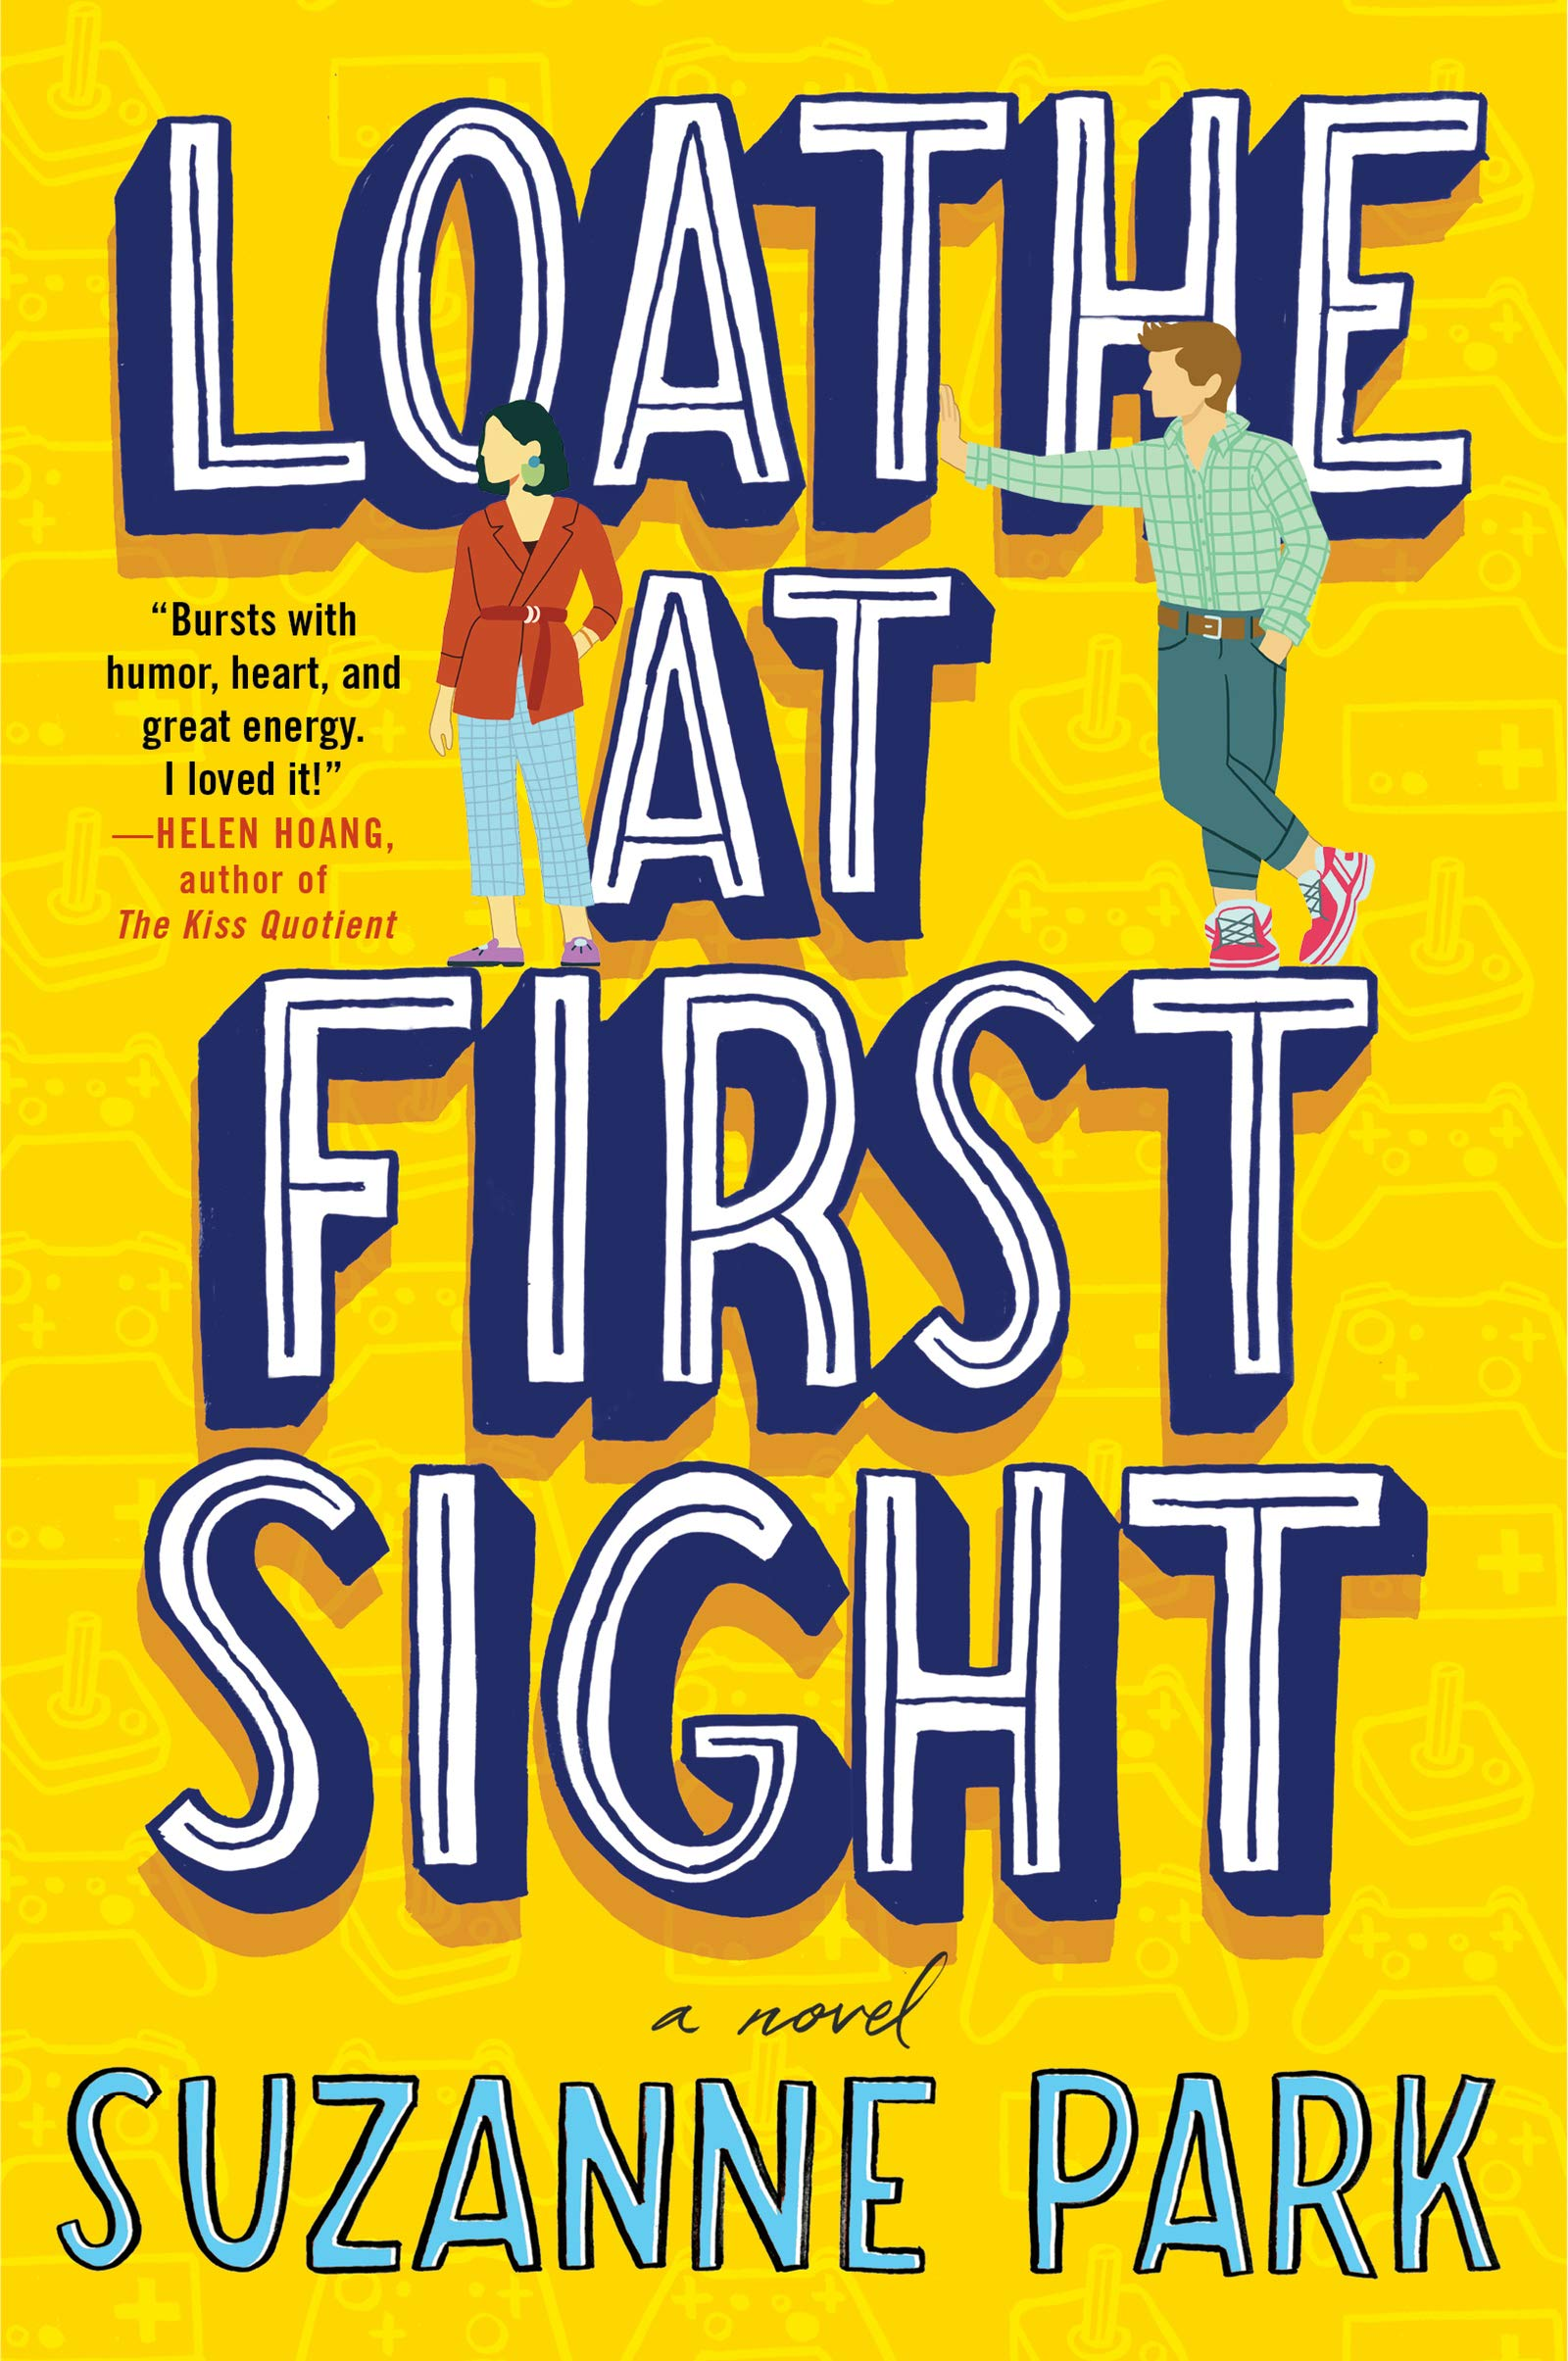 [PDF] [EPUB] Loathe at First Sight Download by Suzanne Park